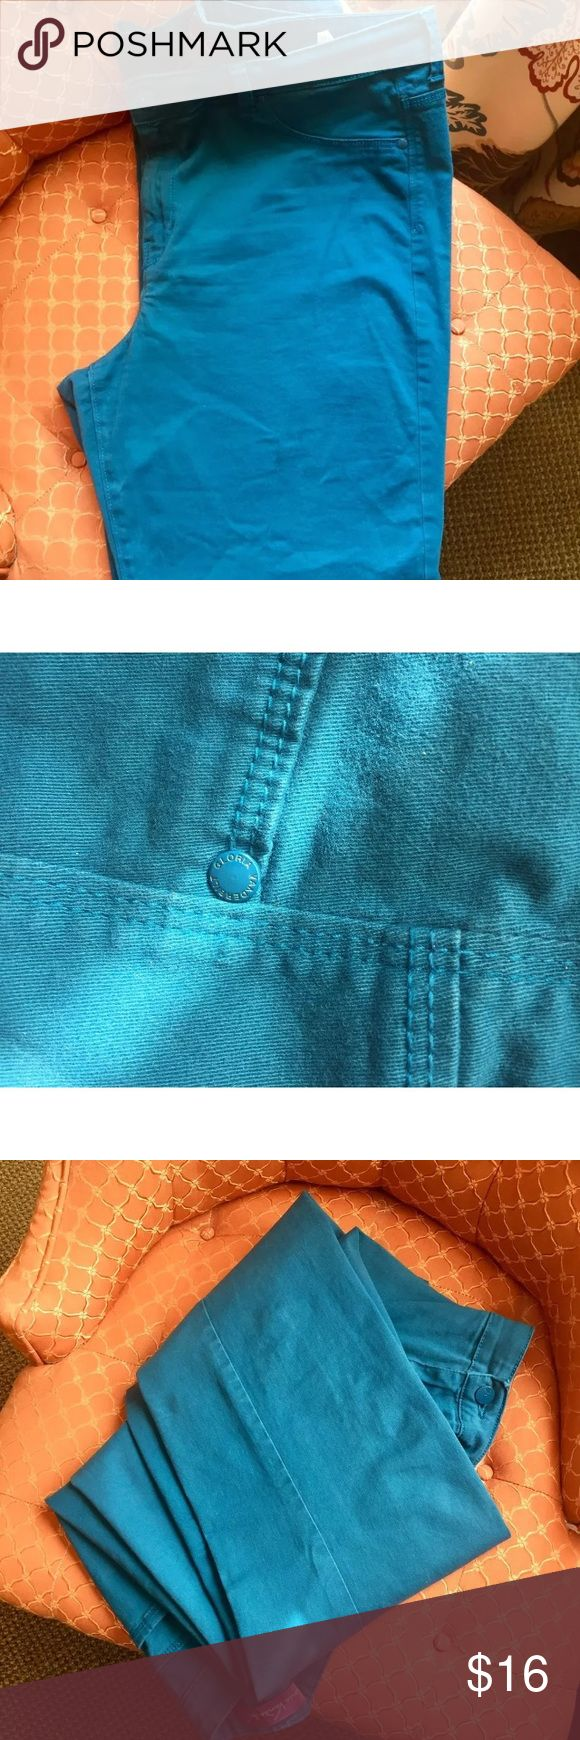 Gloria Vanderbilt Turquoise Jeans Size 18 Plus Pretty and Comfy Turquoise Gloria Vanderbilt Jeans  • Cotton with a little bit of Spandex for Stretch and Comfort  • Size 18  • Pre-loved but in great condition.  • No Animals/Smoke Gloria Vanderbilt Jeans Boot Cut